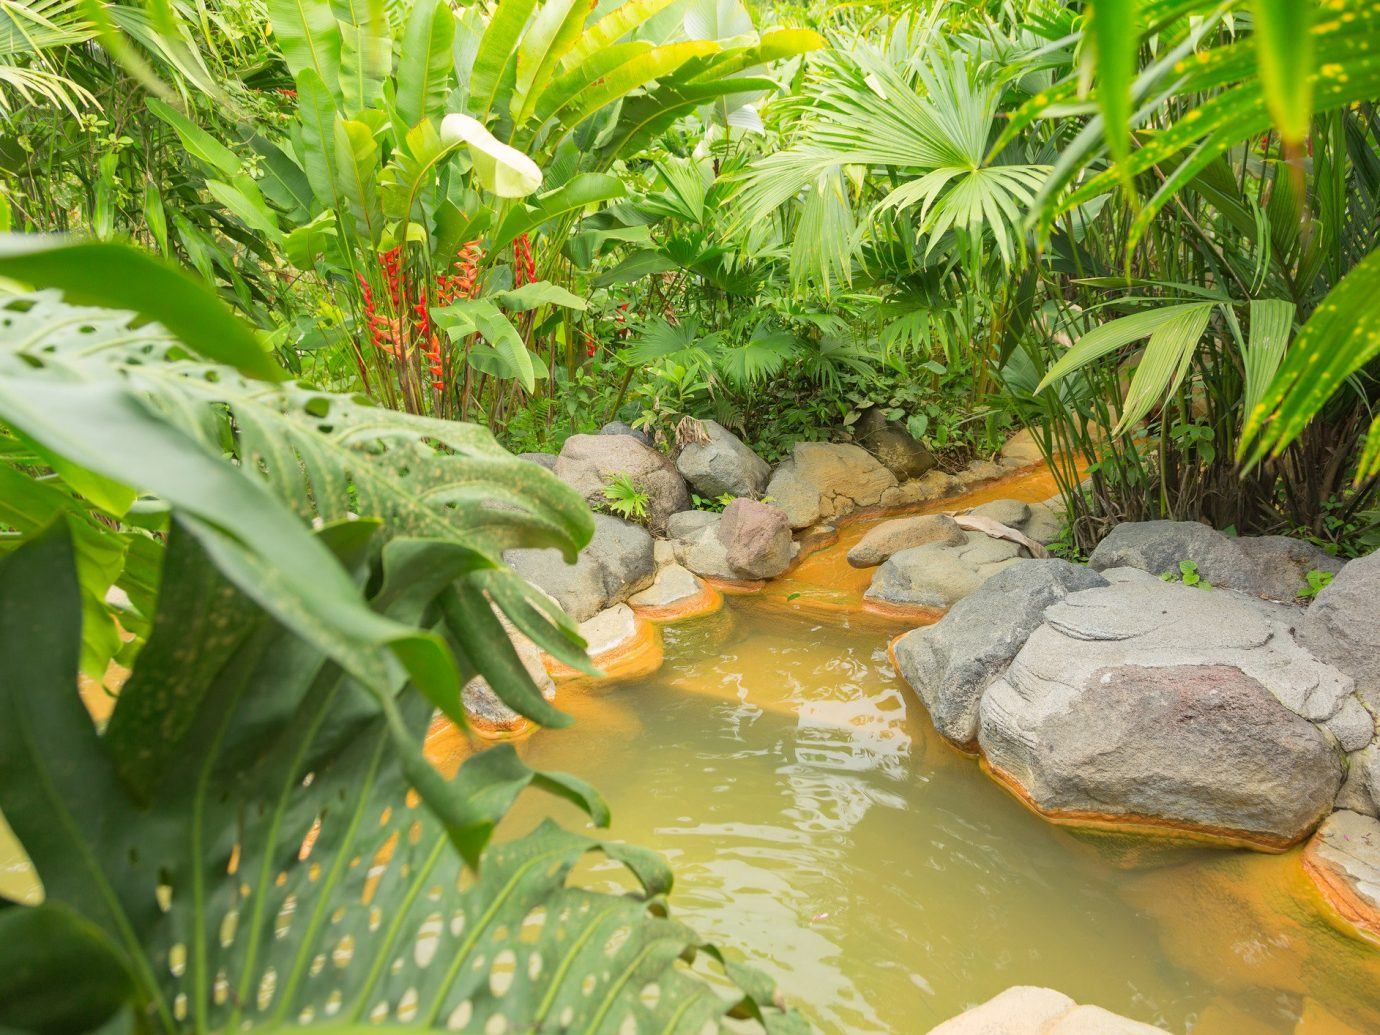 Outdoors + Adventure Trip Ideas vegetation water plant pond leaf botanical garden arecales flora watercourse Garden tropics fish pond landscape Jungle grass aquatic plant palm tree tree water feature rainforest